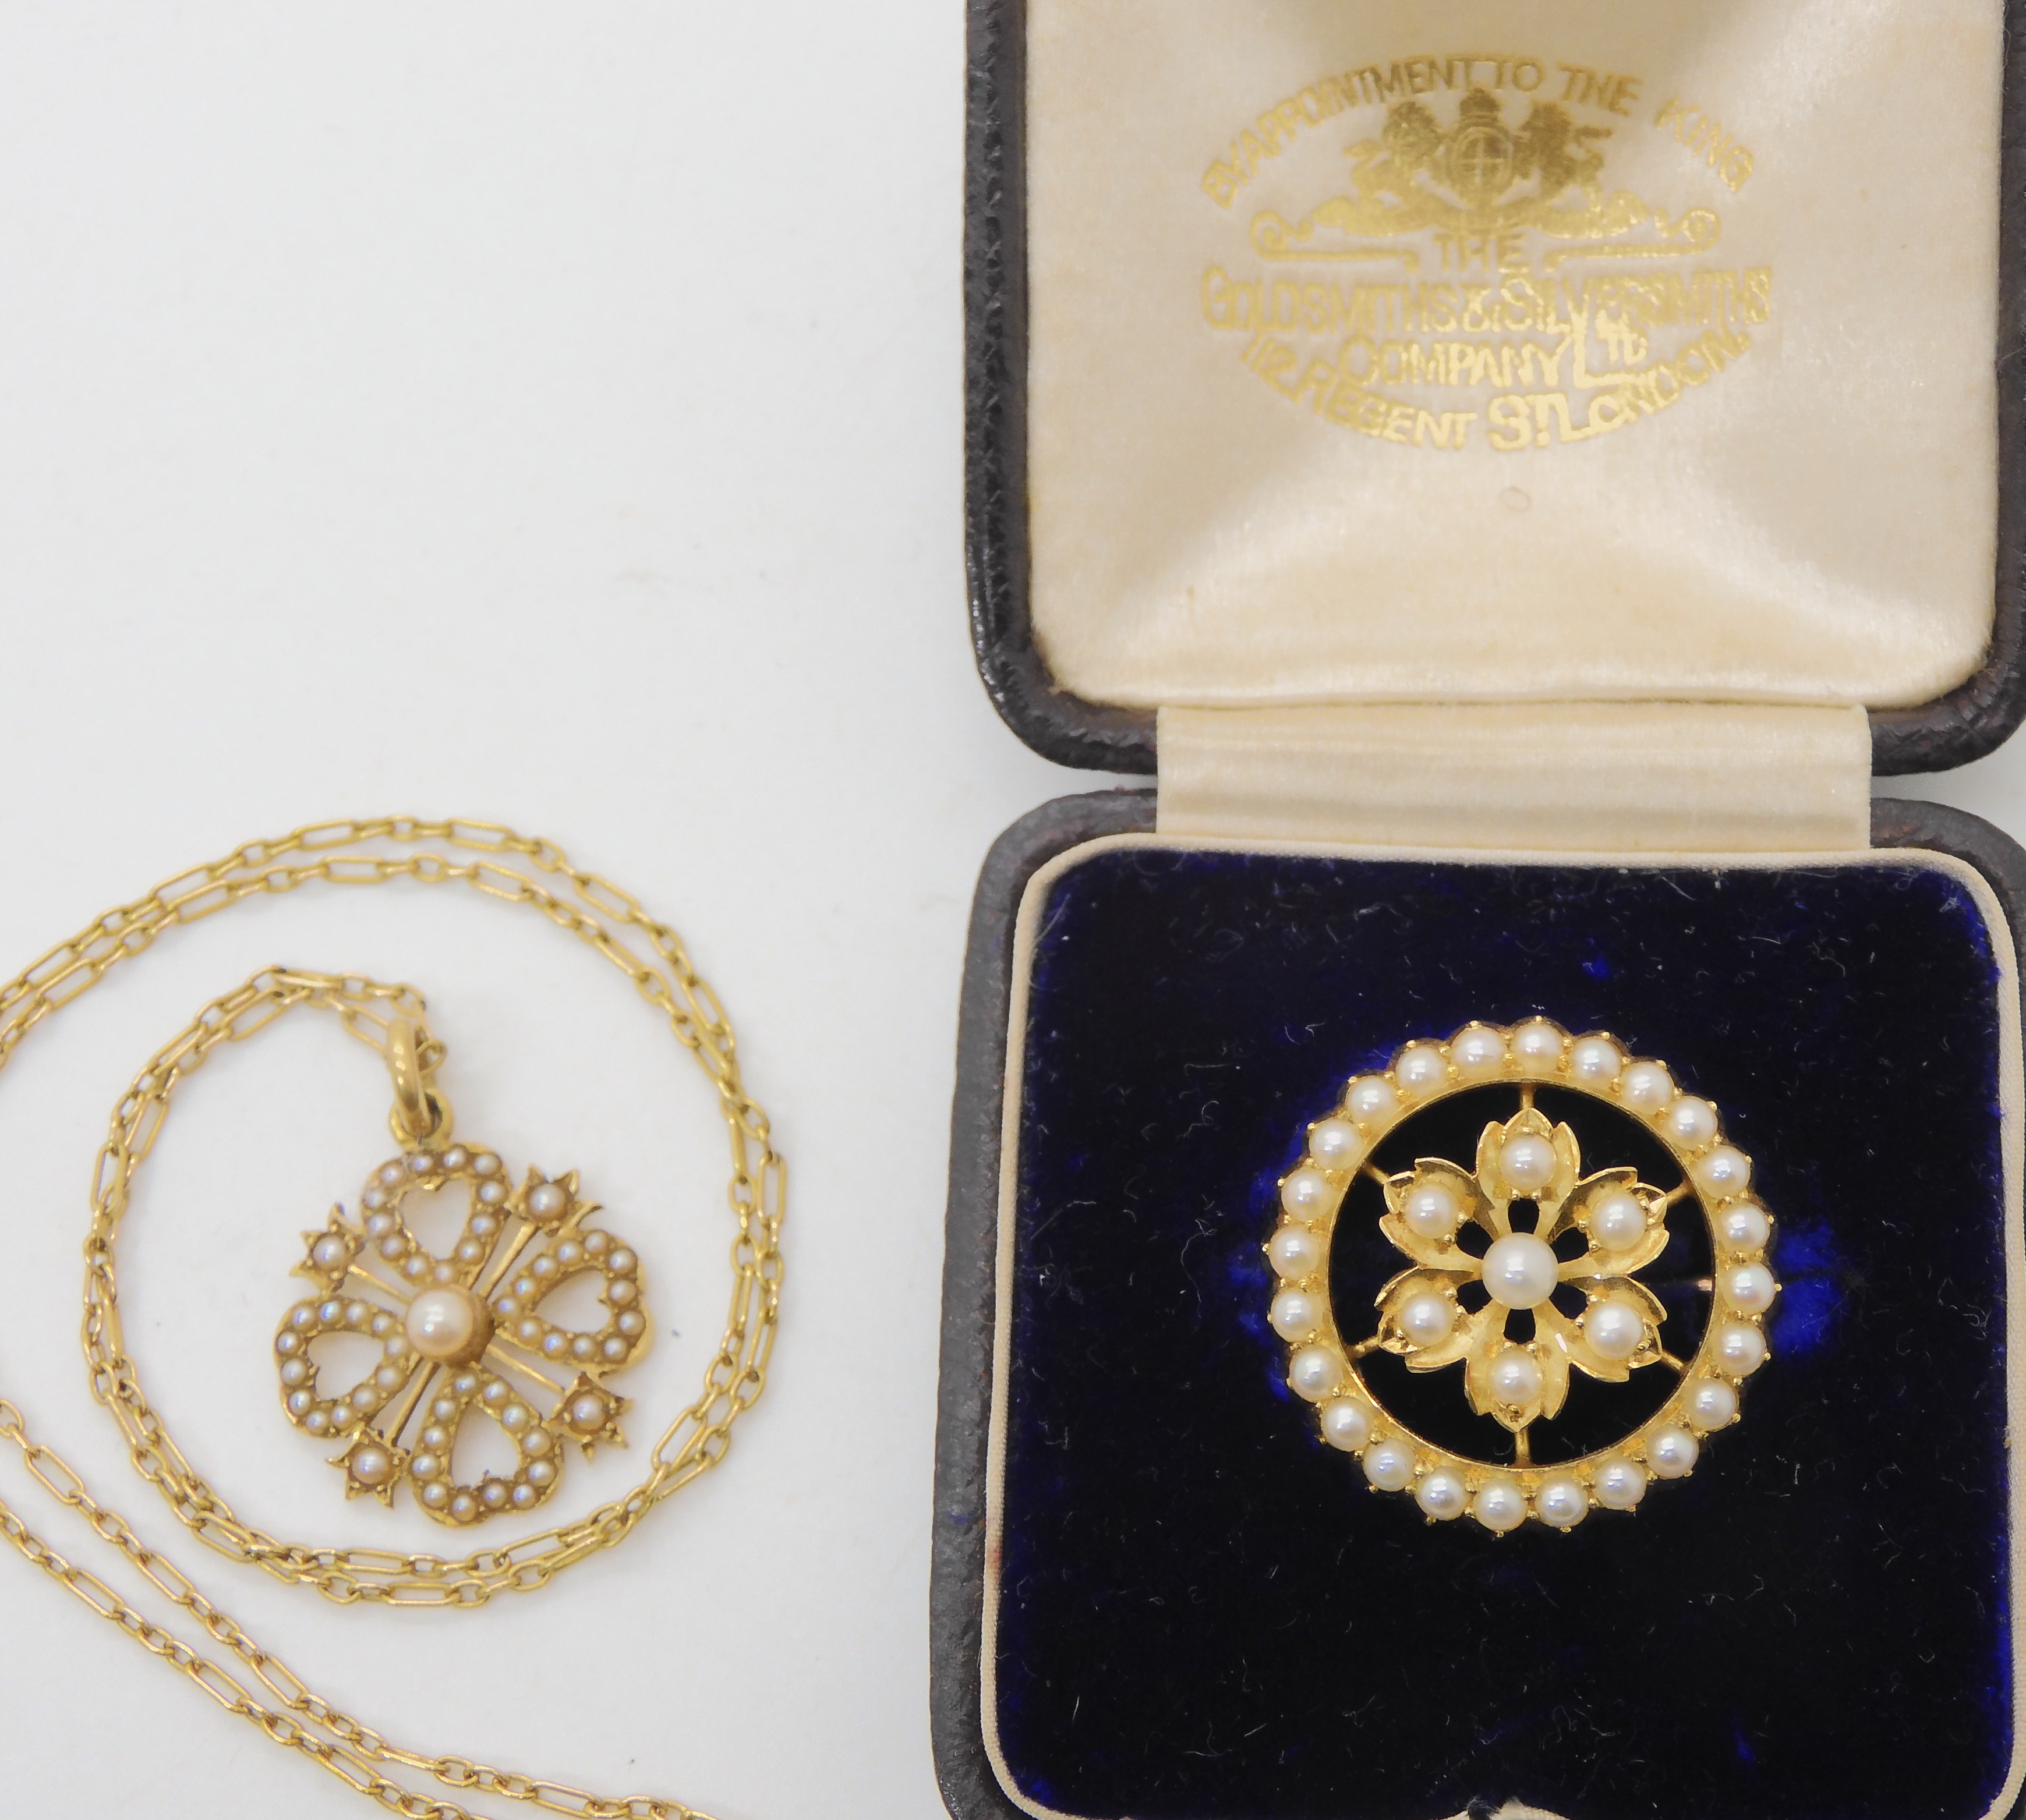 TWO VINTAGE PEARL SET ITEMS a brooch from the Goldsmiths & Silversmiths Co, in original fitted - Image 2 of 3